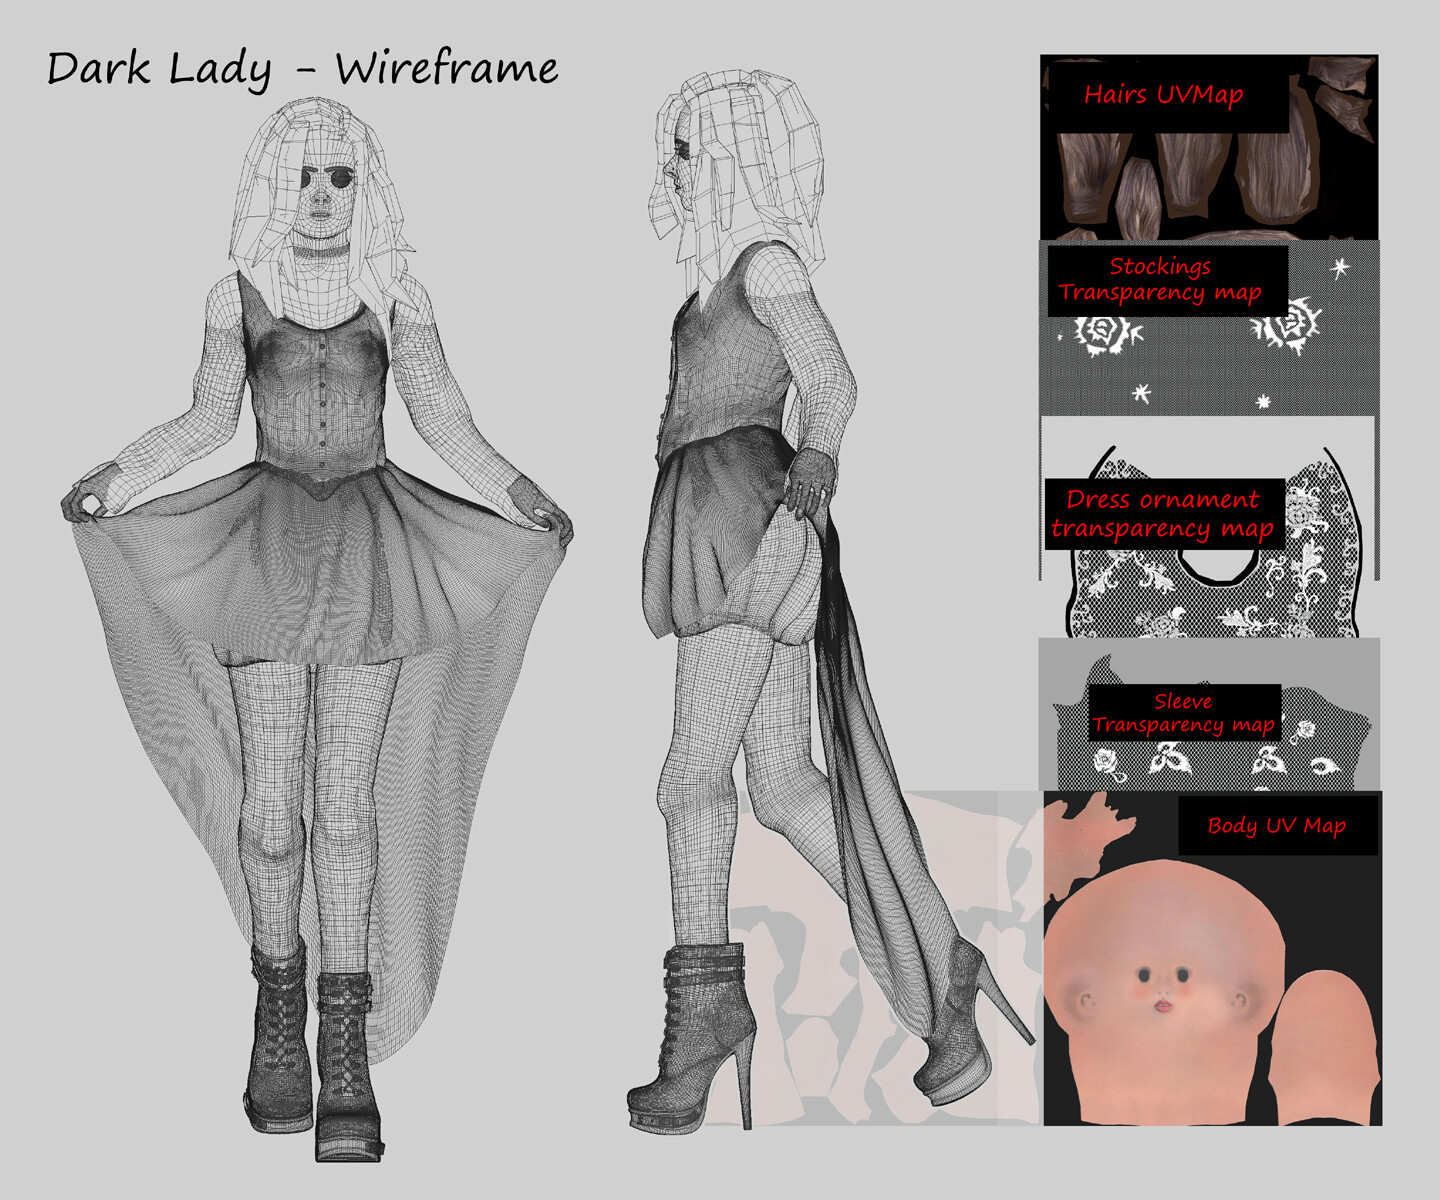 Dark Lady - wireframe and textures